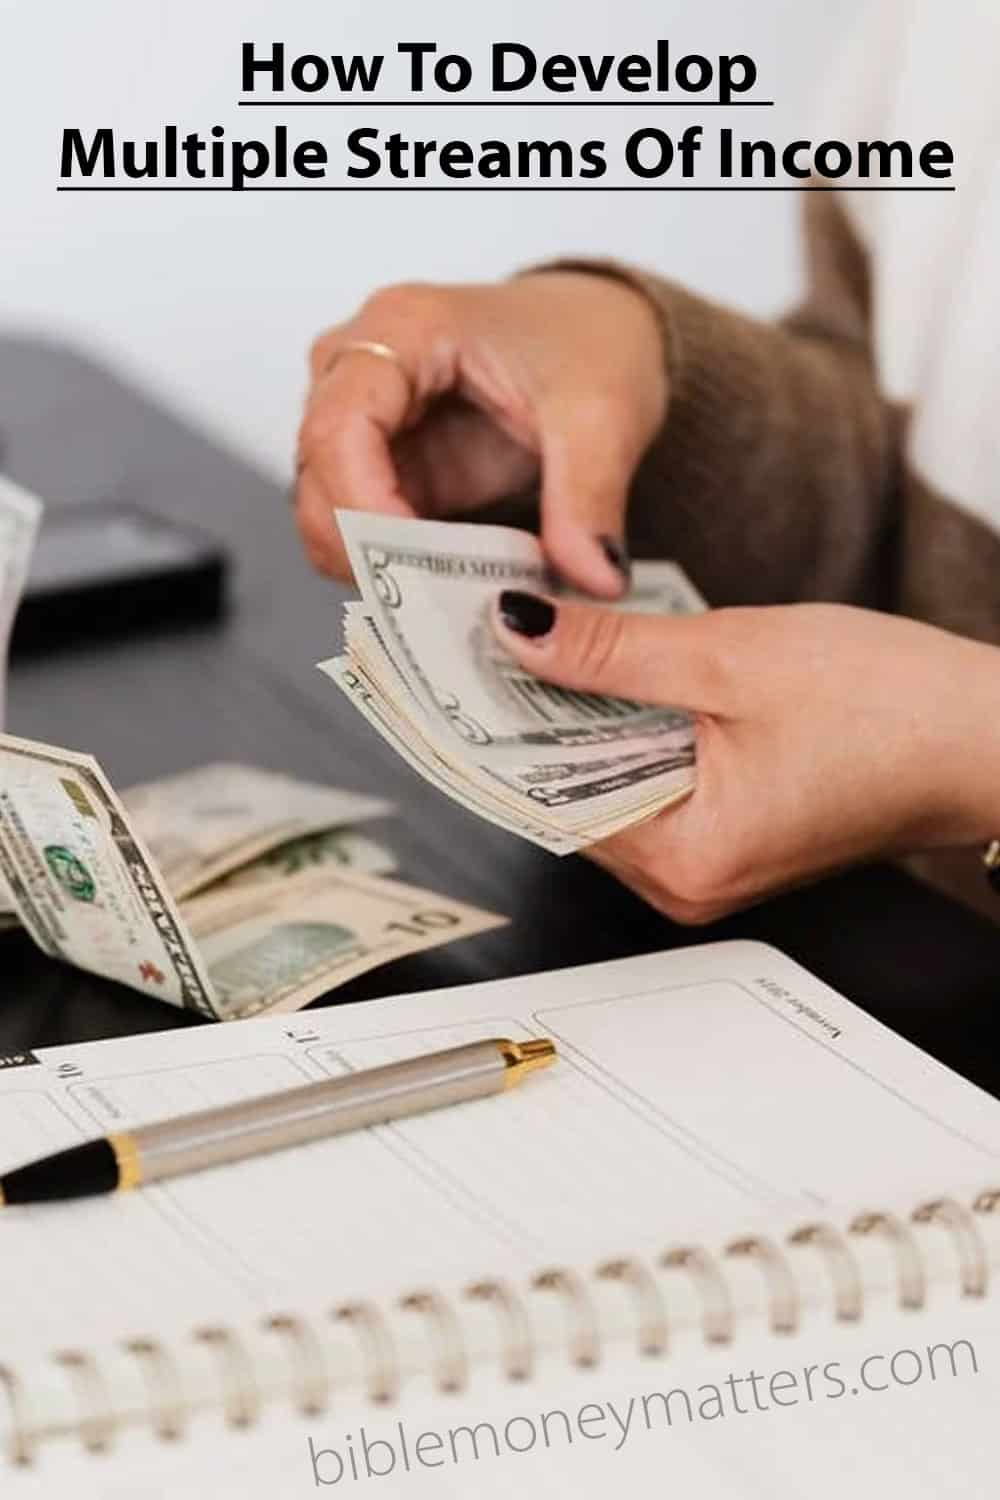 How To Develop Multiple Streams Of Income